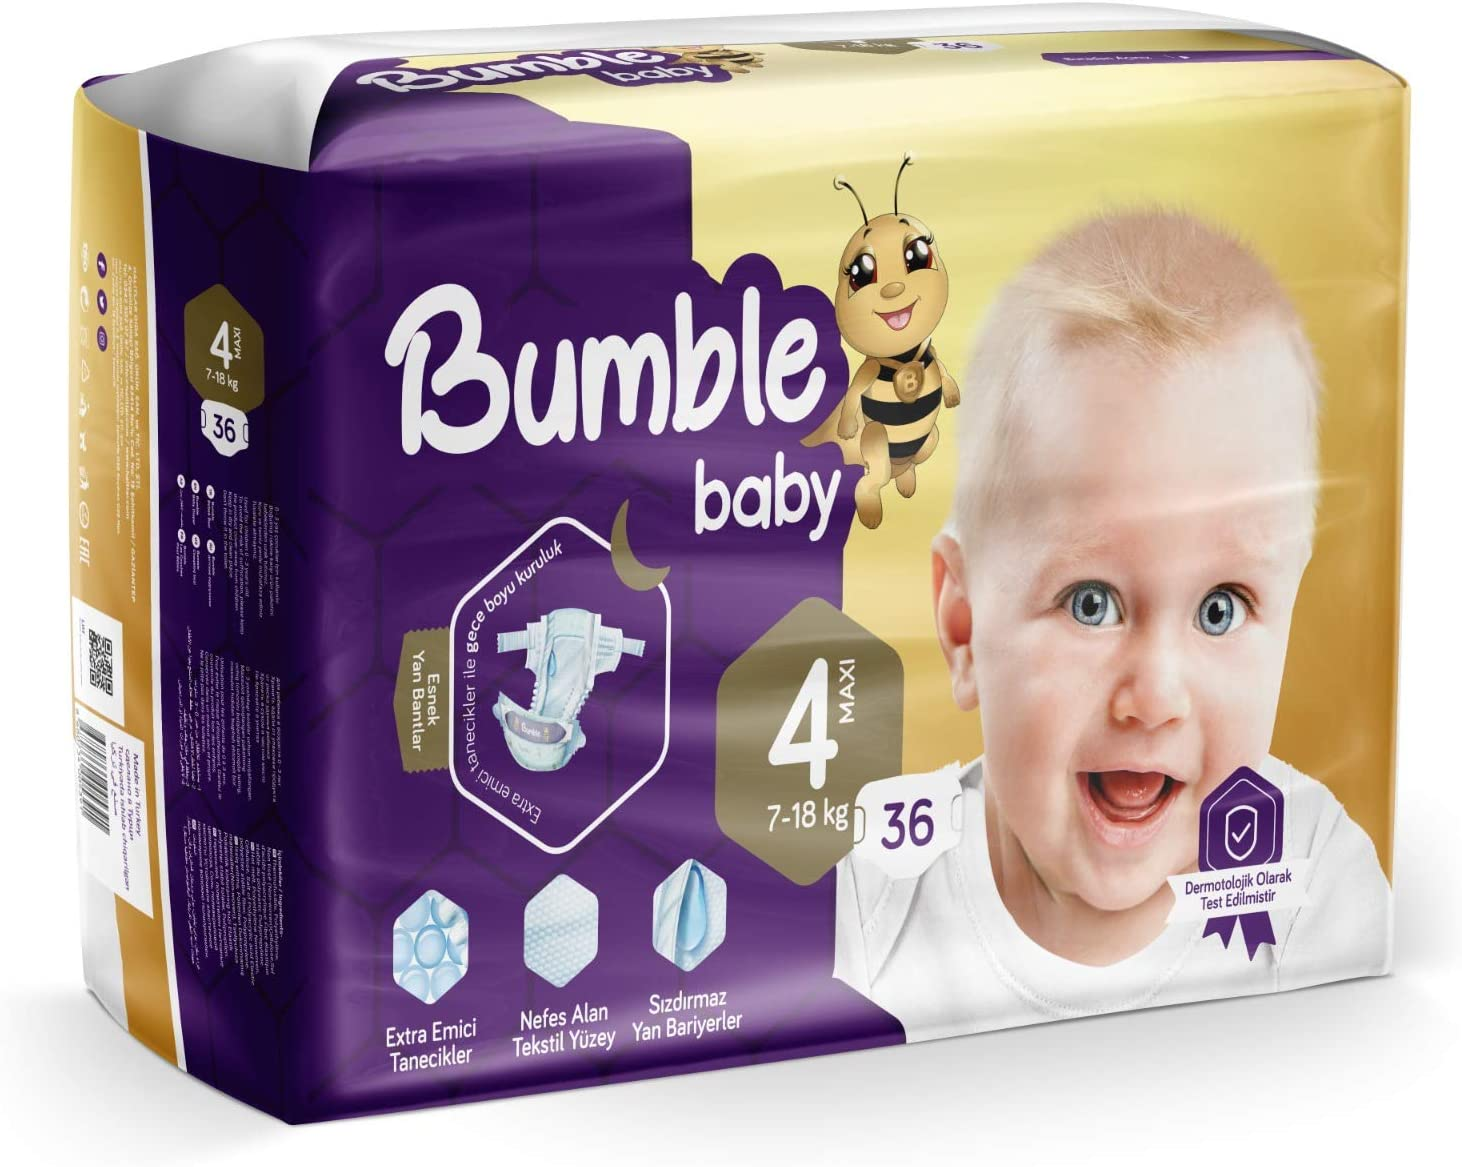 Bumble Baby Diapers, Size 4 7-18KG 36 Counts drip Proof barriers, Textile Surfaces, Absorbing Particles, Ultra-Flexible Side Grip Strips (4)